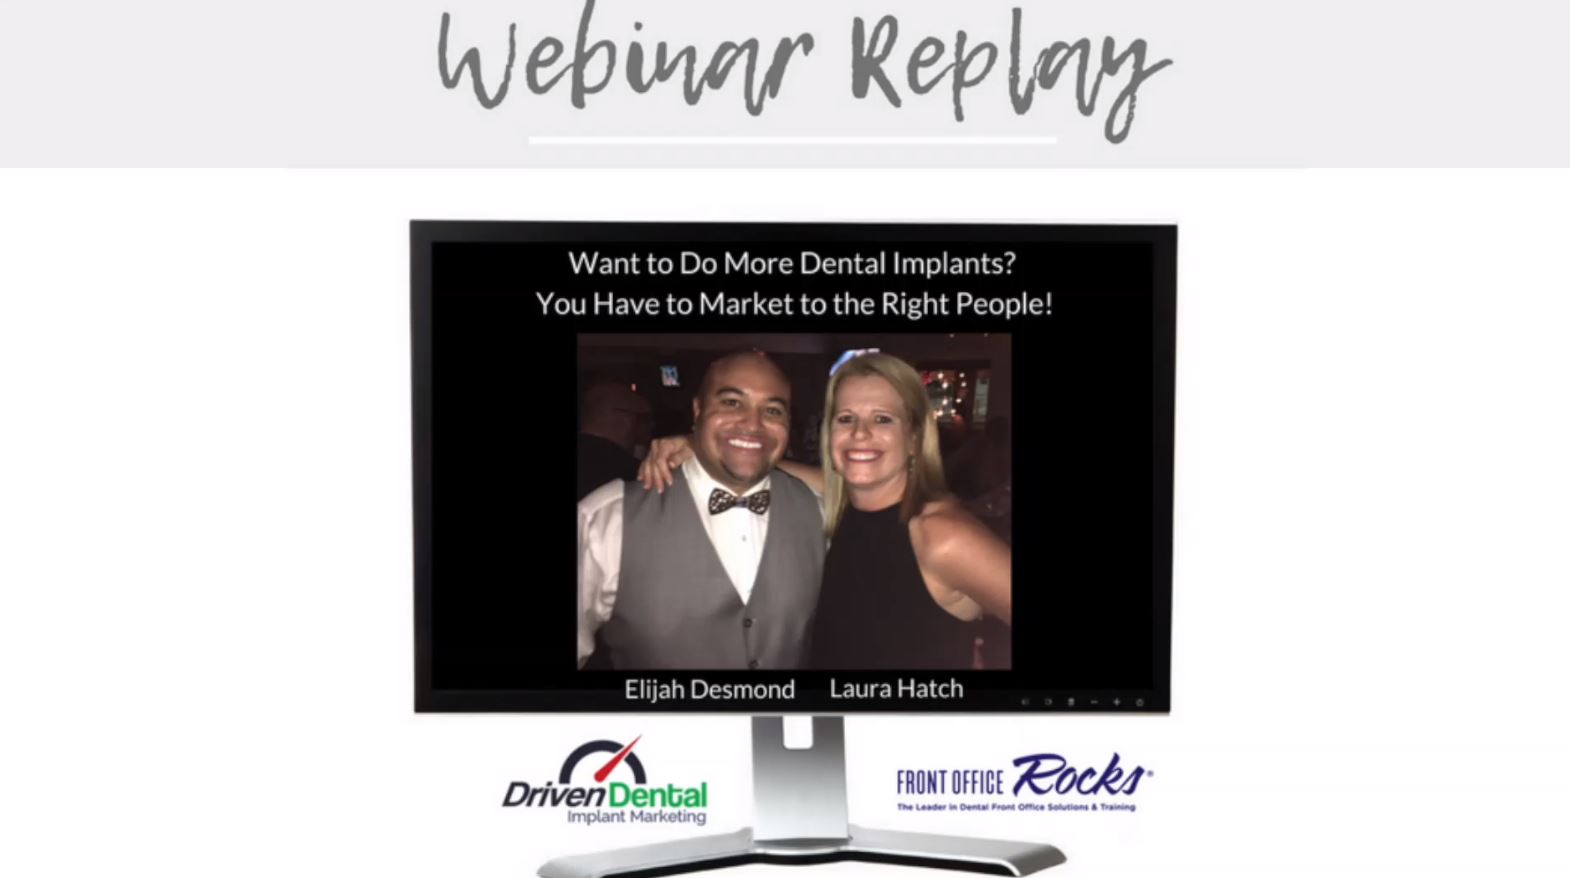 Dental Implant Marketing Webinar Image